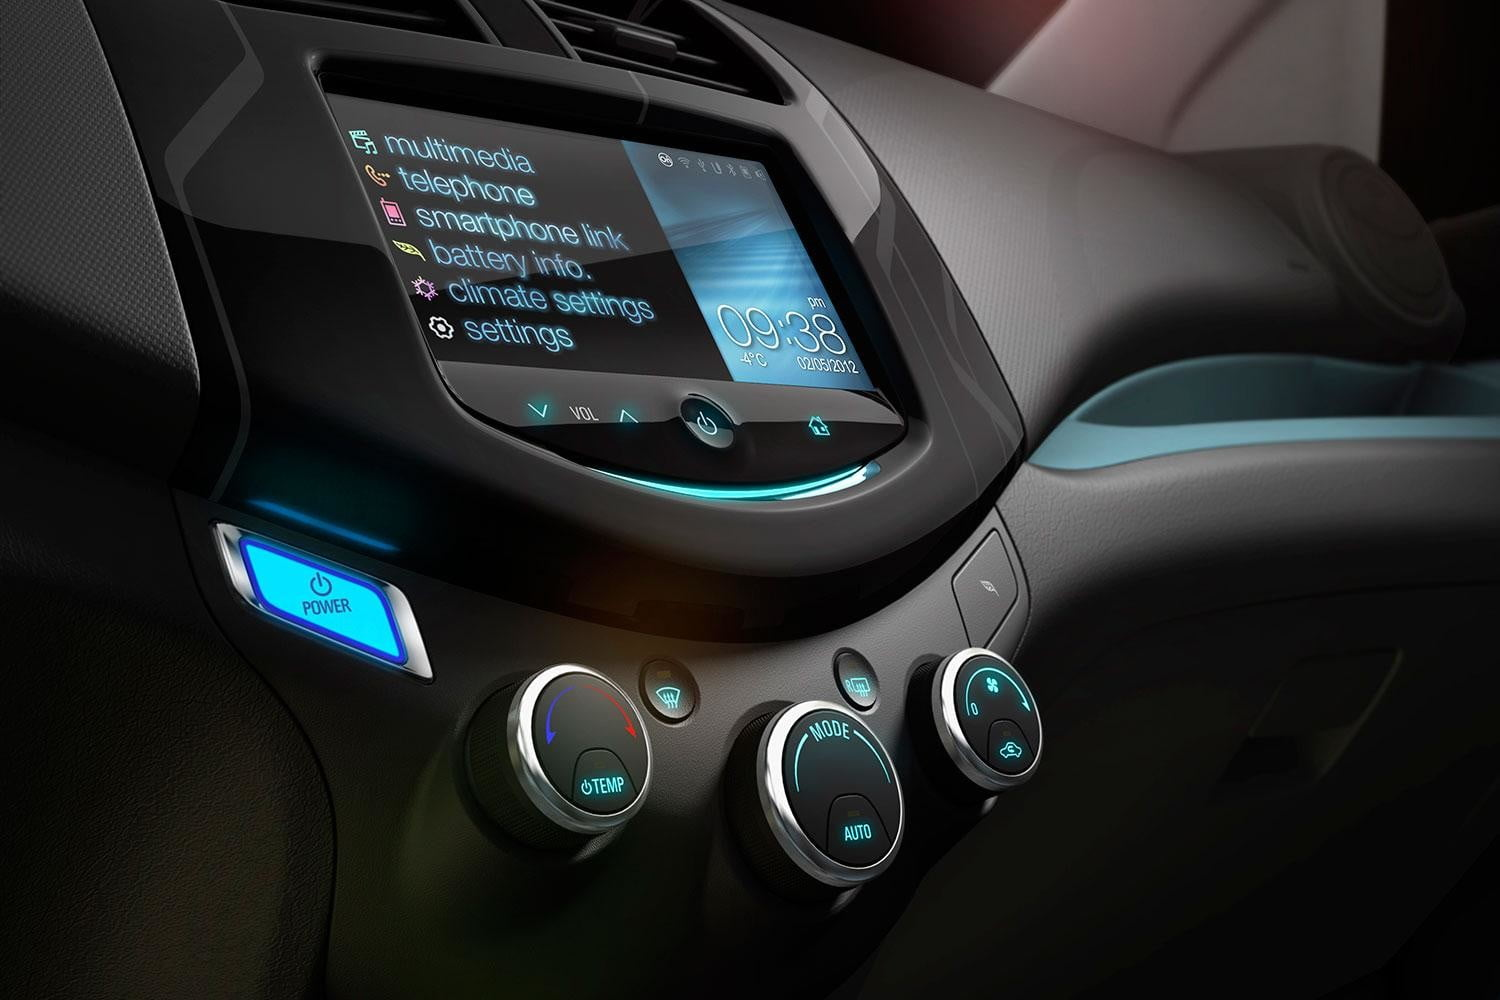 2014 Chevrolet SparkEV interior tech entertainment console